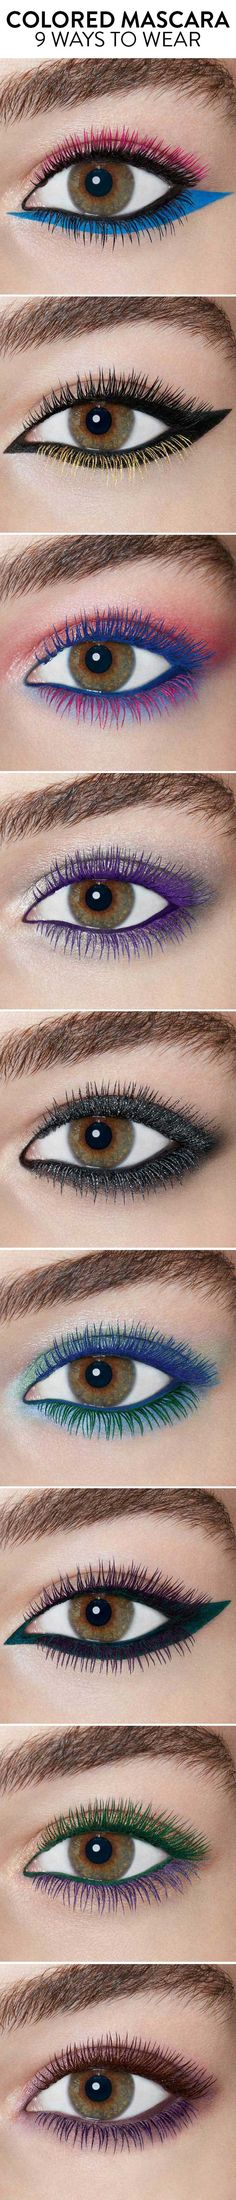 Beauty How-To: Wear Colored Mascara in 9 Shades, 9 Ways Colored mascara: best new colors and how to wear from Nordstrom. DIY Colored Mascara How-TBeauty How-To: Four WaysYounique Deals – February Blinc Mascara, Mascara Brush, 3d Fiber Lash Mascara, Mascara Tips, Fiber Lashes, Mascara Tutorial, Famous Makeup Artists, Colored Mascara, Make Up